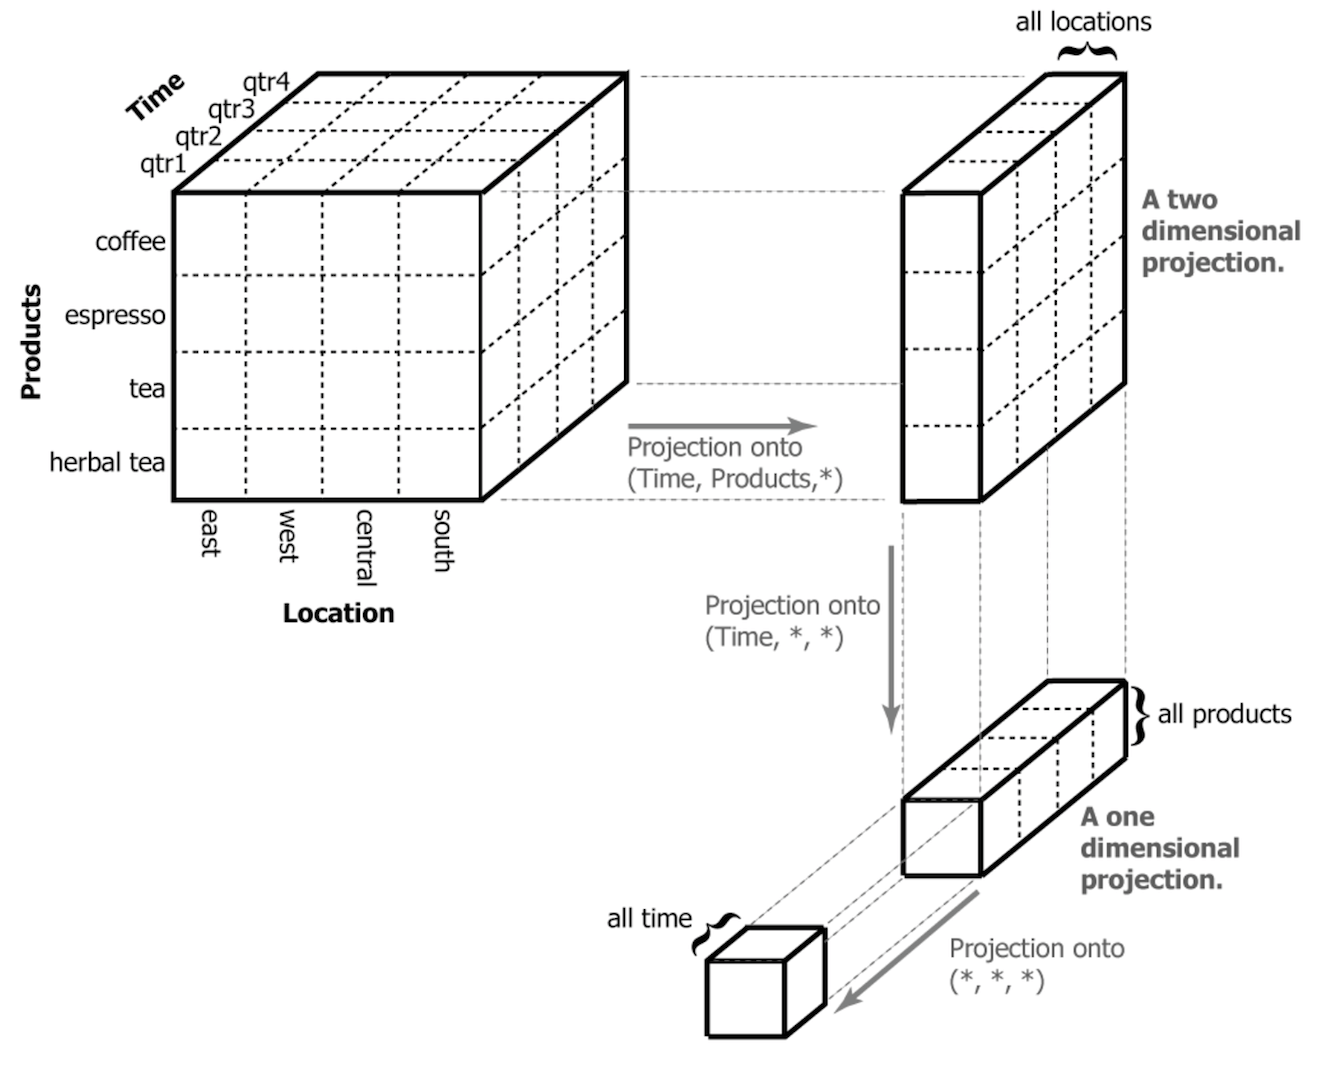 Row-Level Thinking vs. Cube Thinking